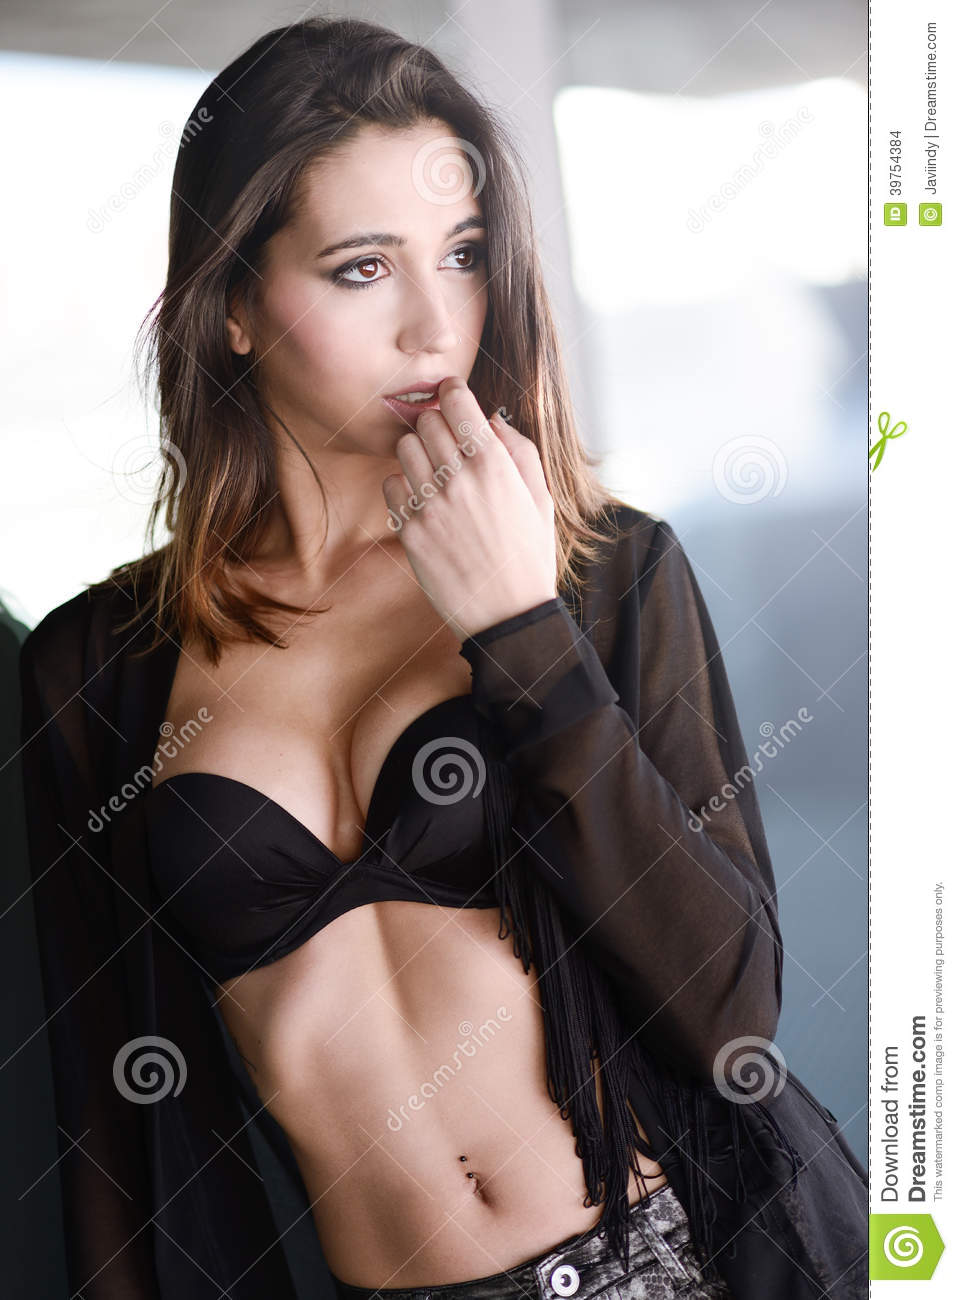 c77abcd29f076 Woman Wearing Black Bra And Jeans Stock Photo - Image of attractive ...